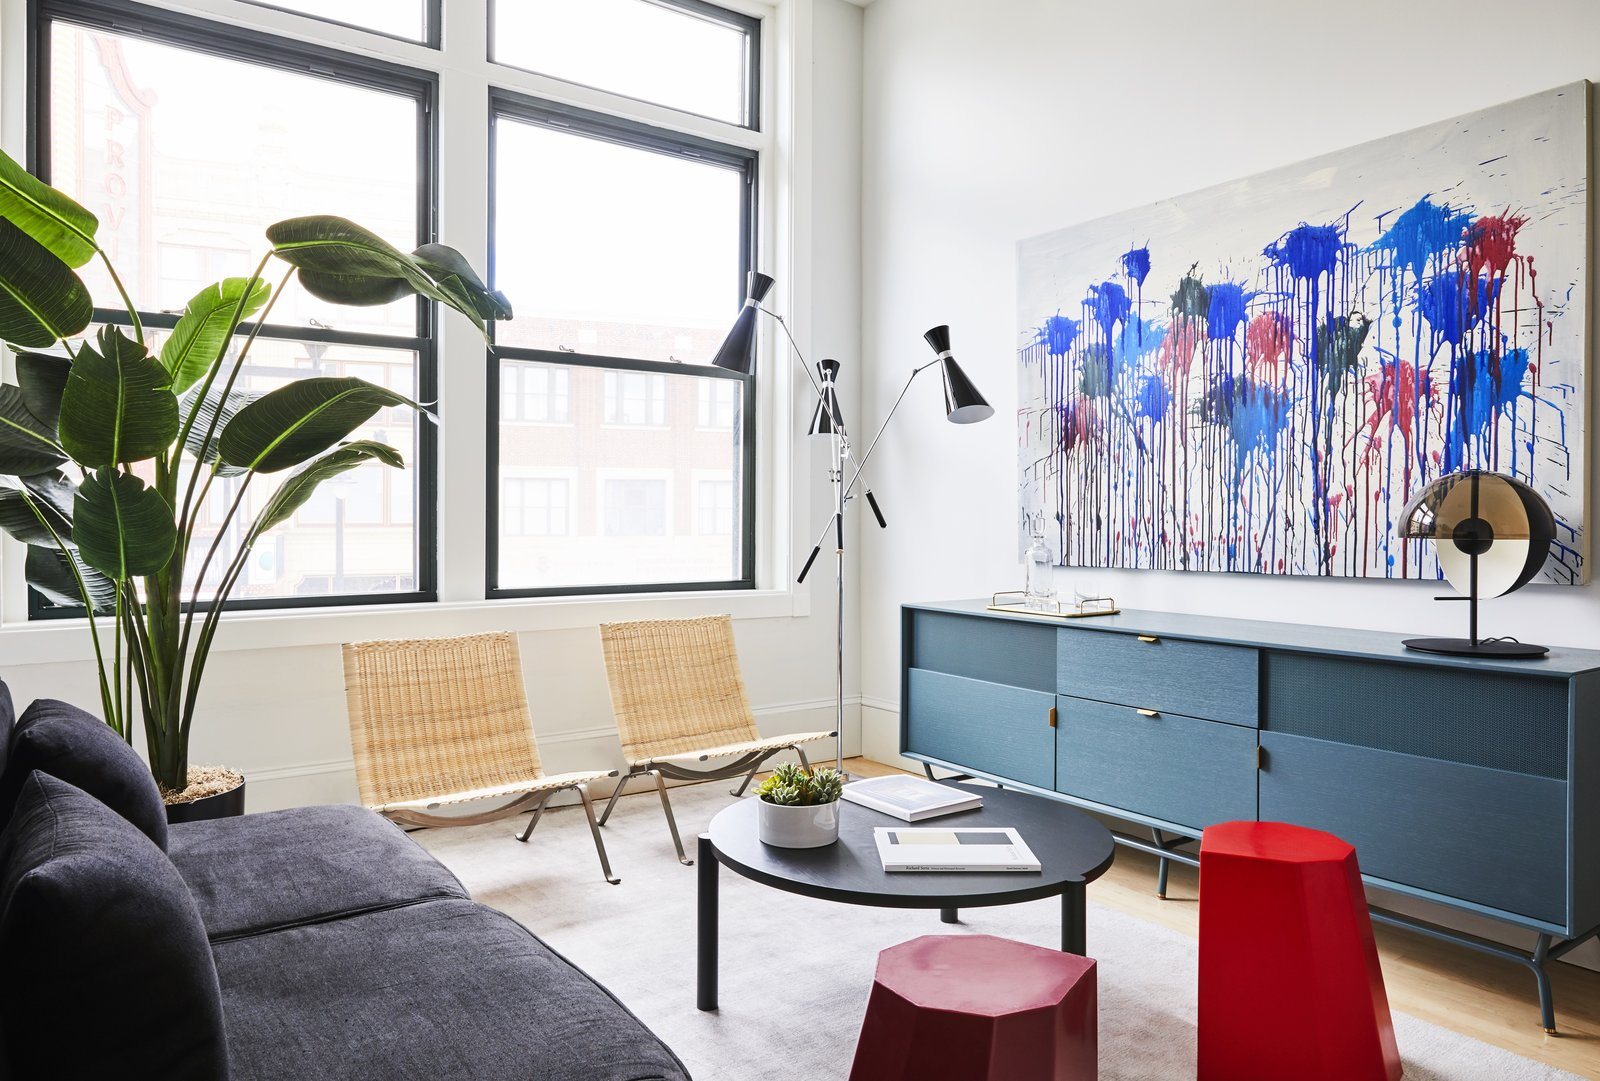 5 Easy Tips From Modern Condos For Creating a Scandinavian-Inspired Interior